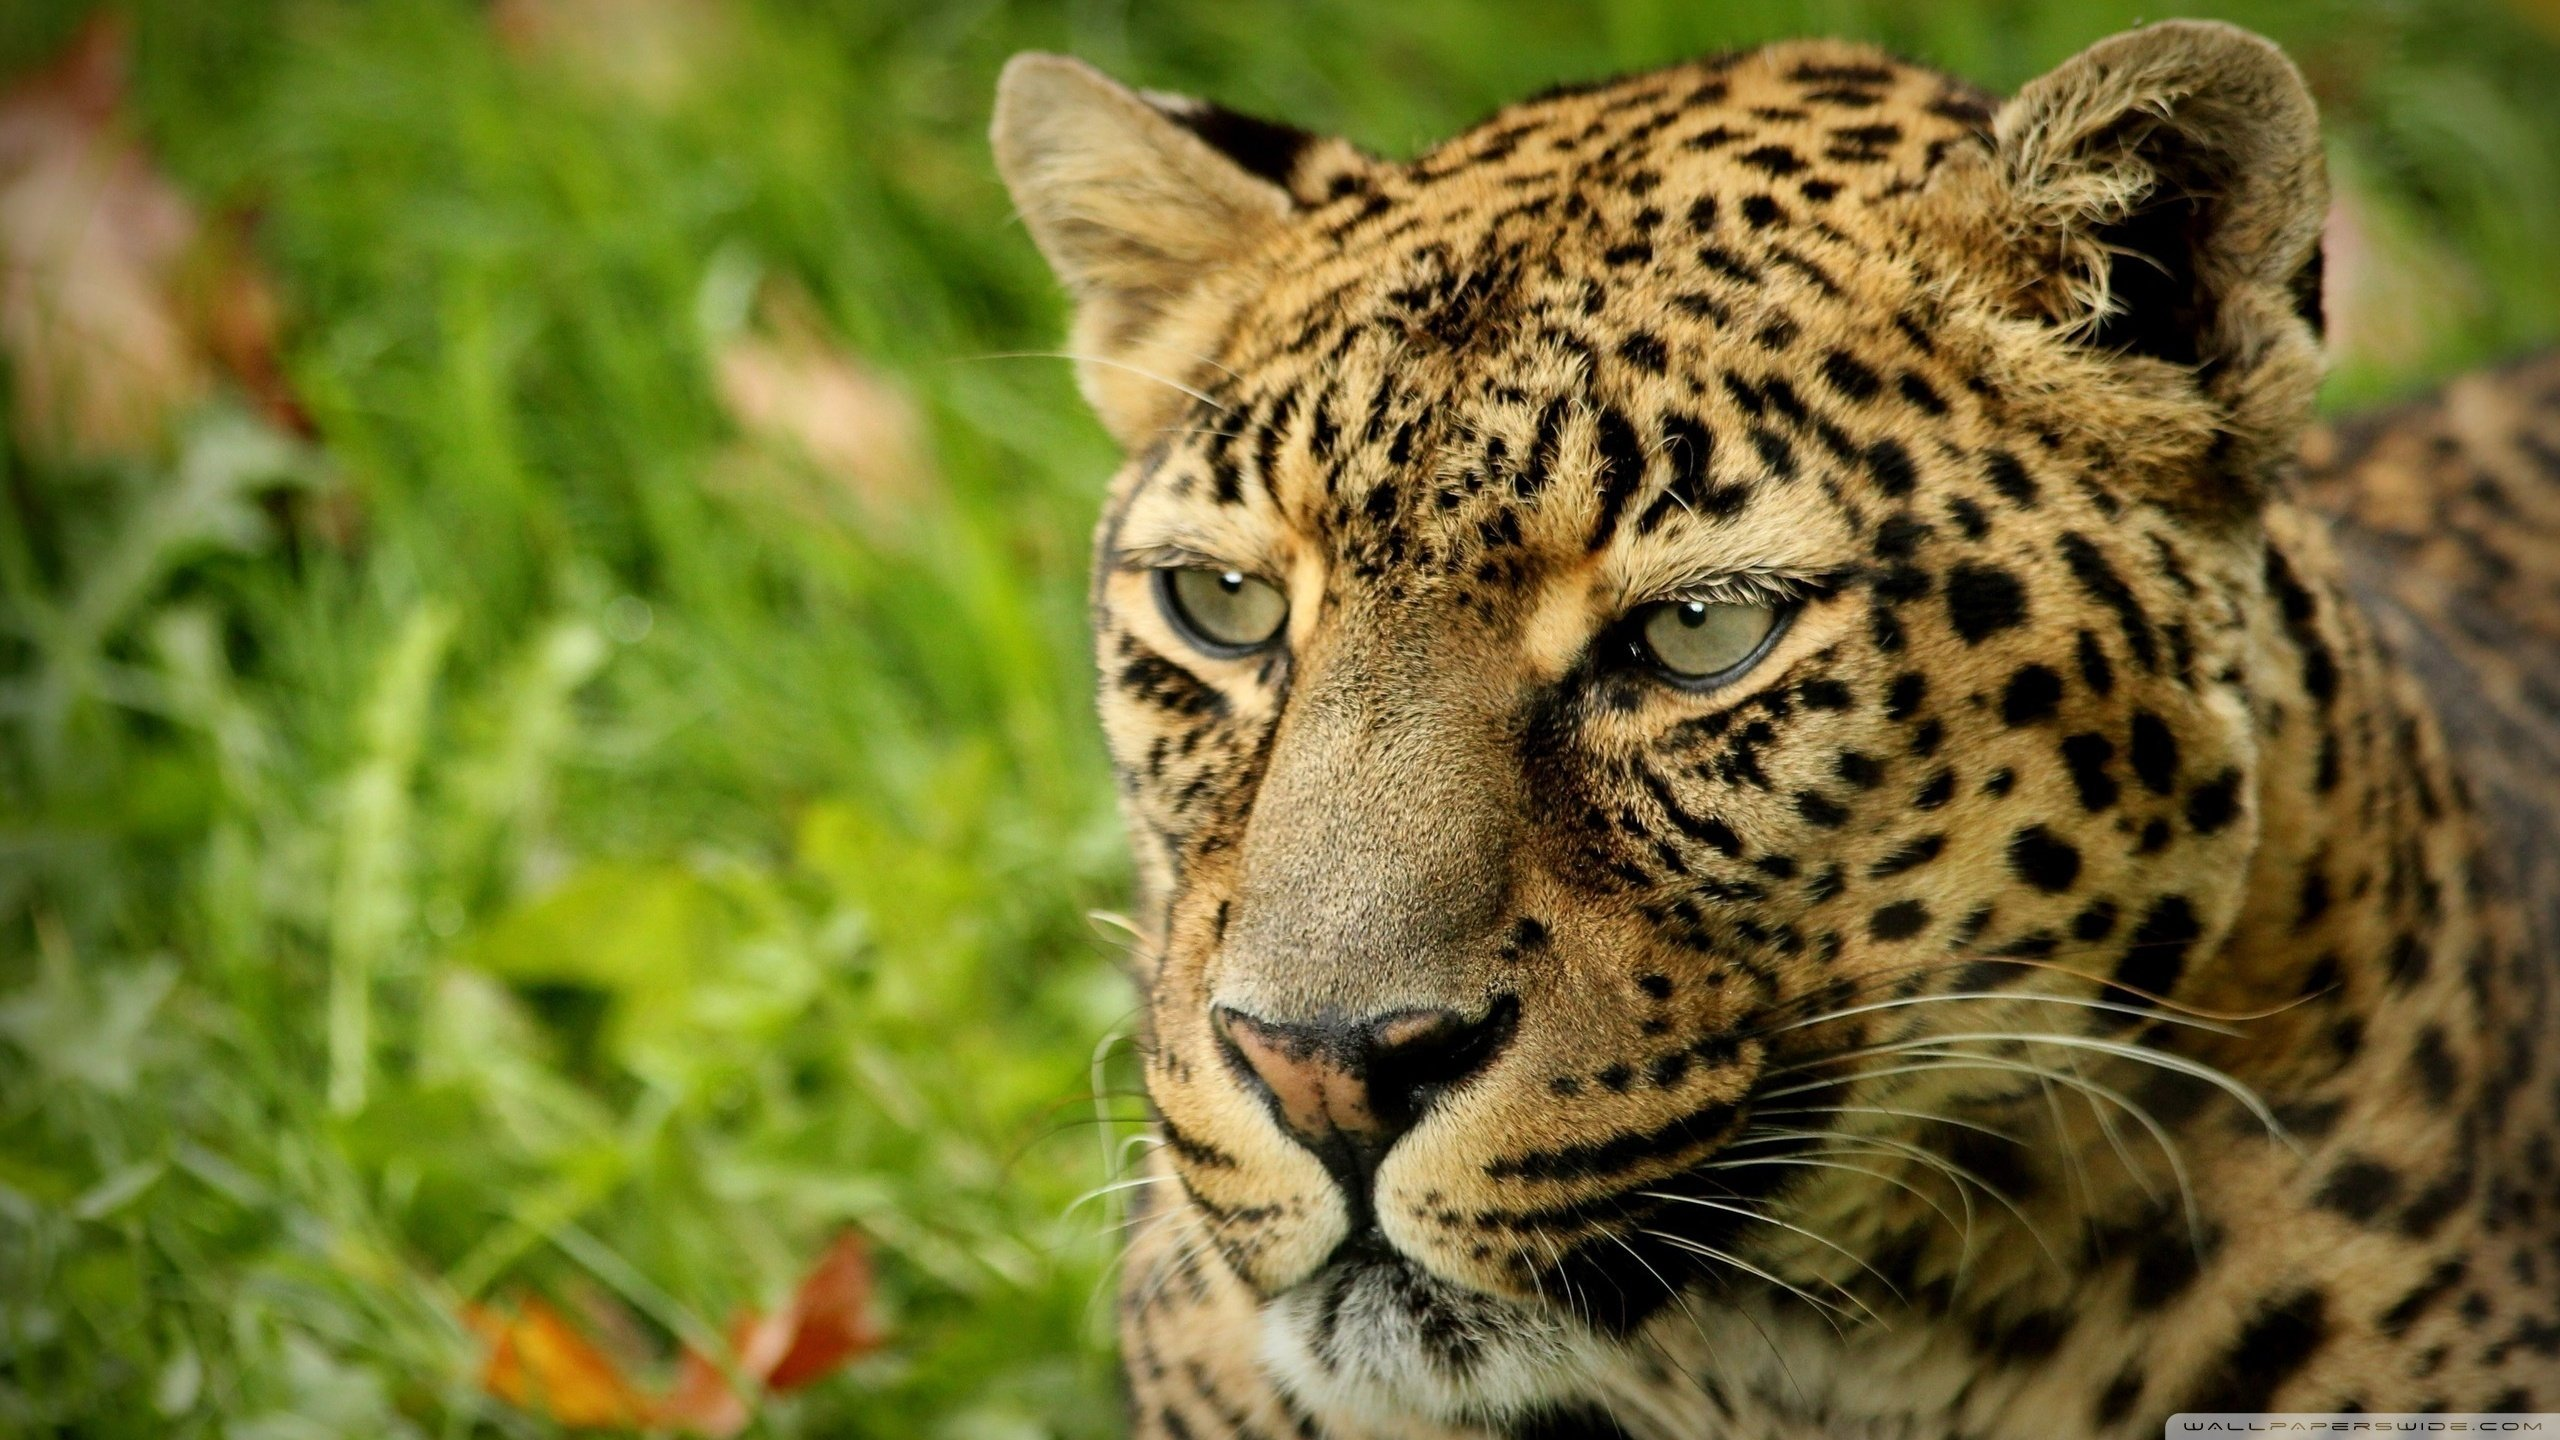 Download hd 2560x1440 Leopard desktop background ID:448236 for free